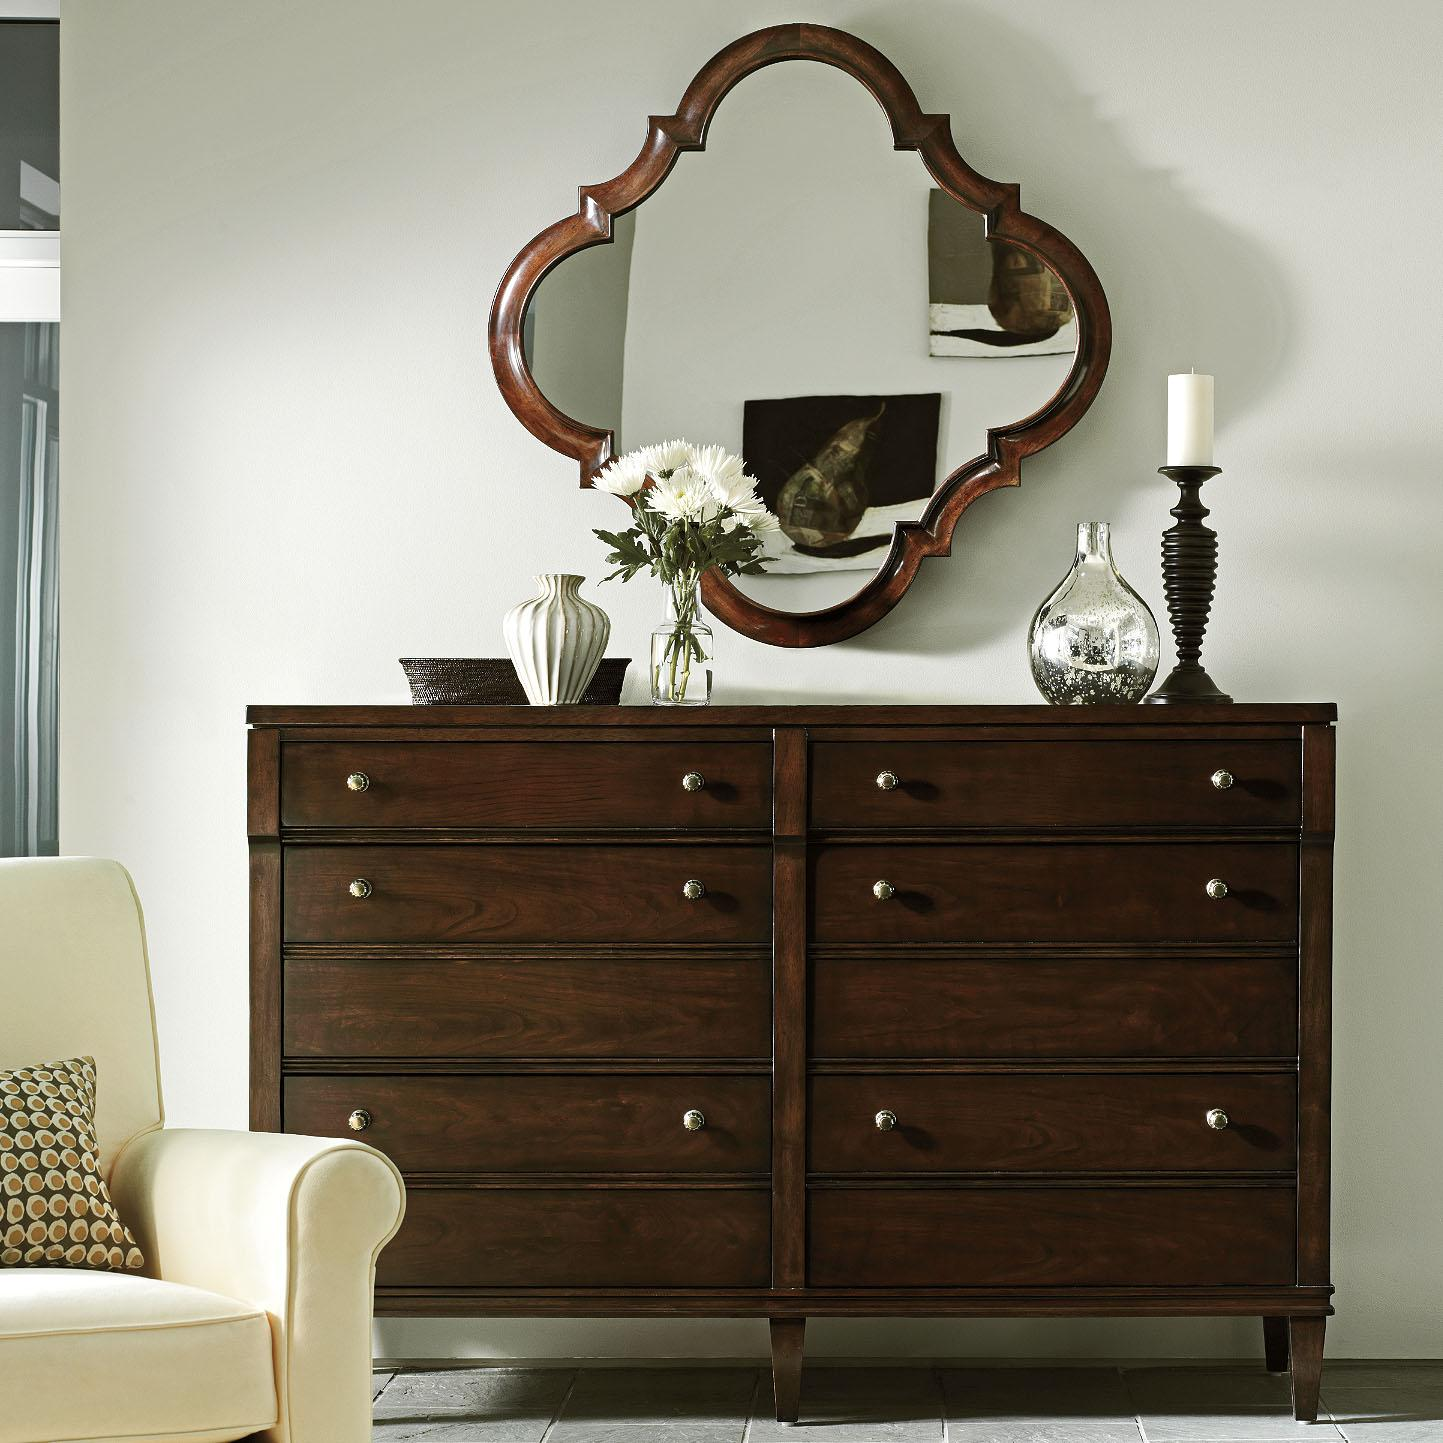 Stanley Furniture Avalon Heights Resonance Dresser and Decorative Mirror Set - Item Number: 193-13-05+31